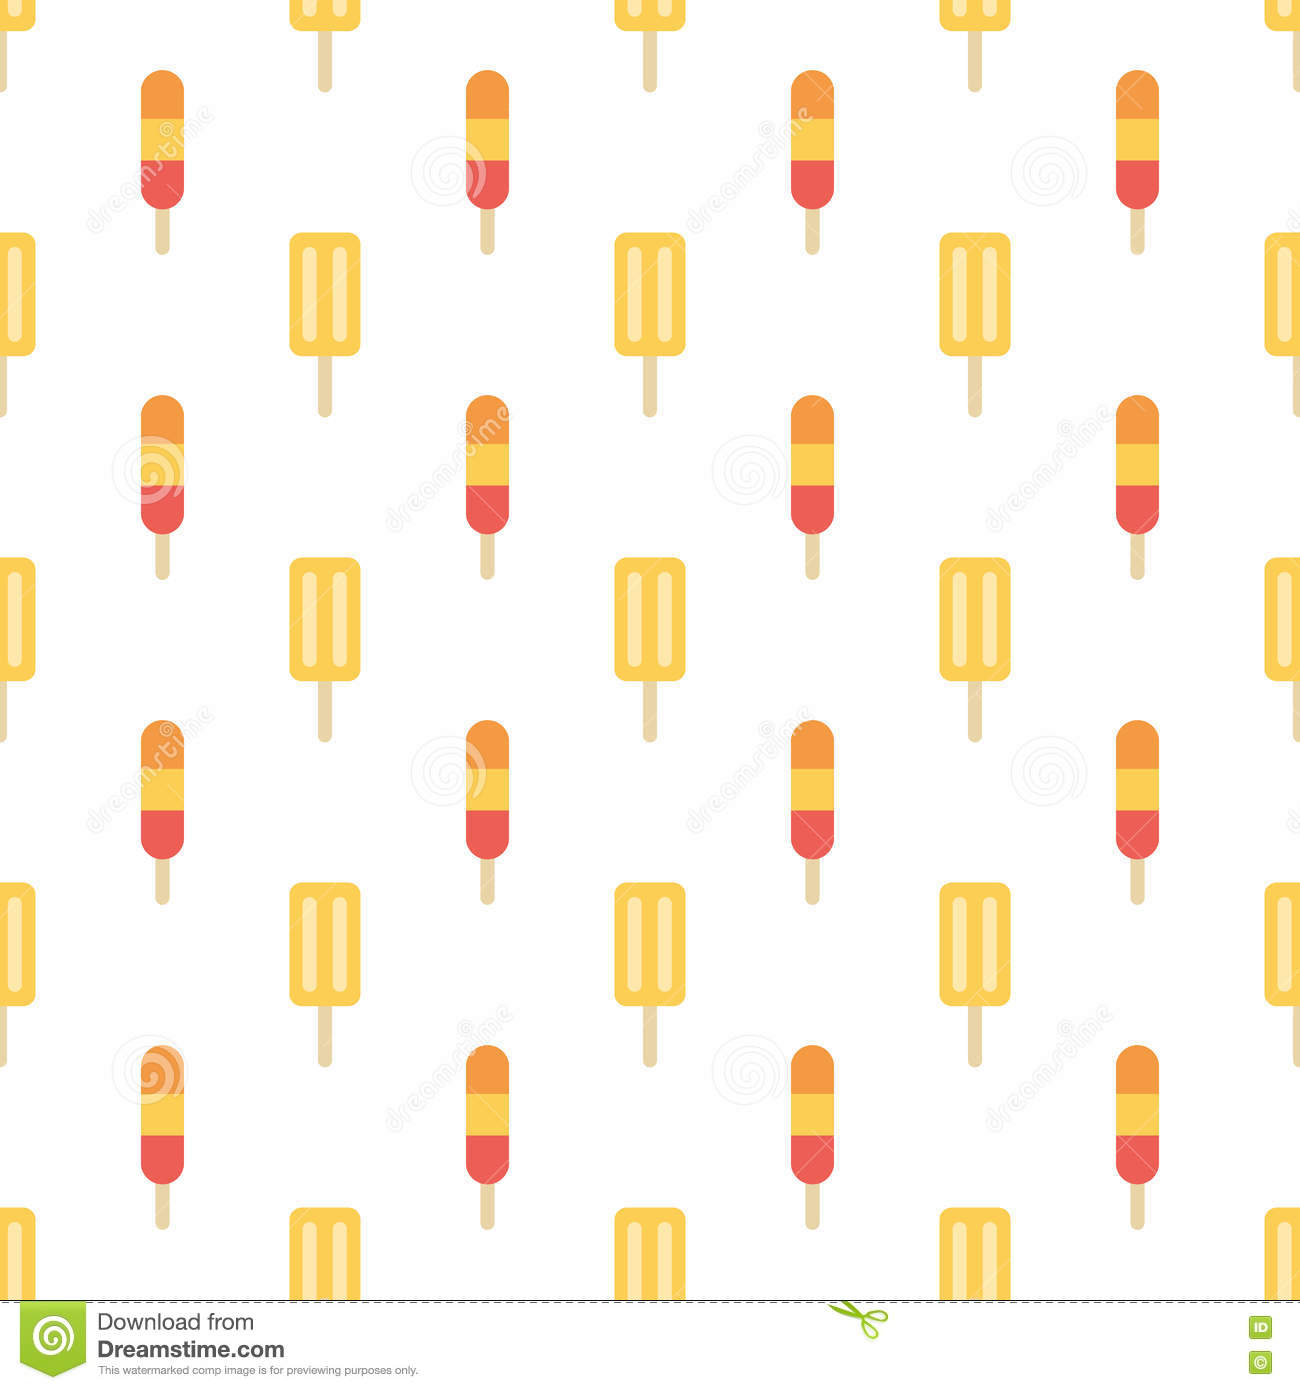 Sweet Ice Cream Flat Colorful Seamless Pattern Vector: Colorful Flat Design Ice Cream Seamless Pattern Background